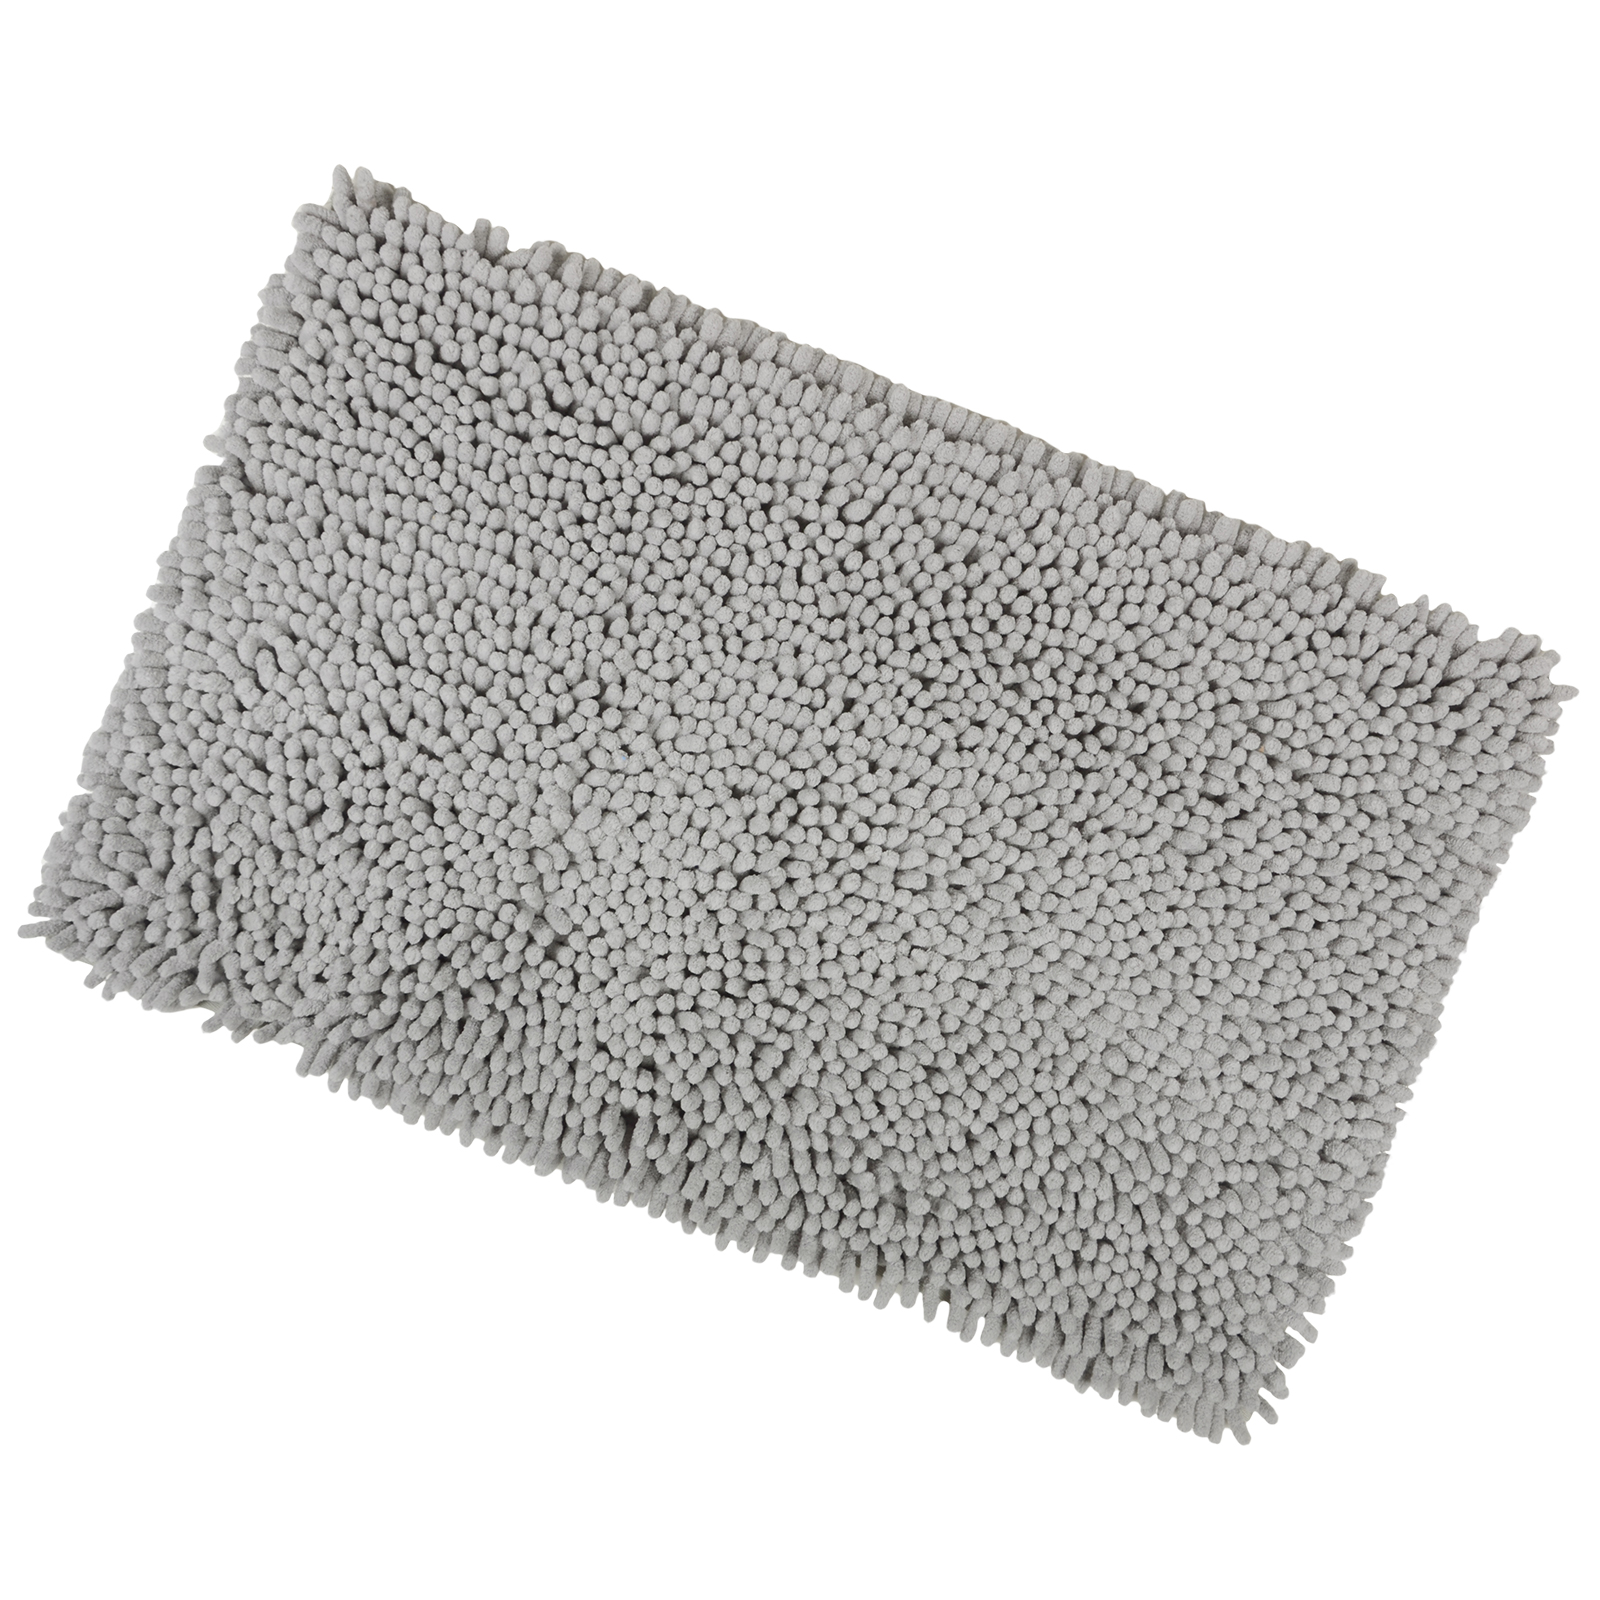 Shaggy Microfibre Bathroom Shower Bath Mat Rug Non-Slip